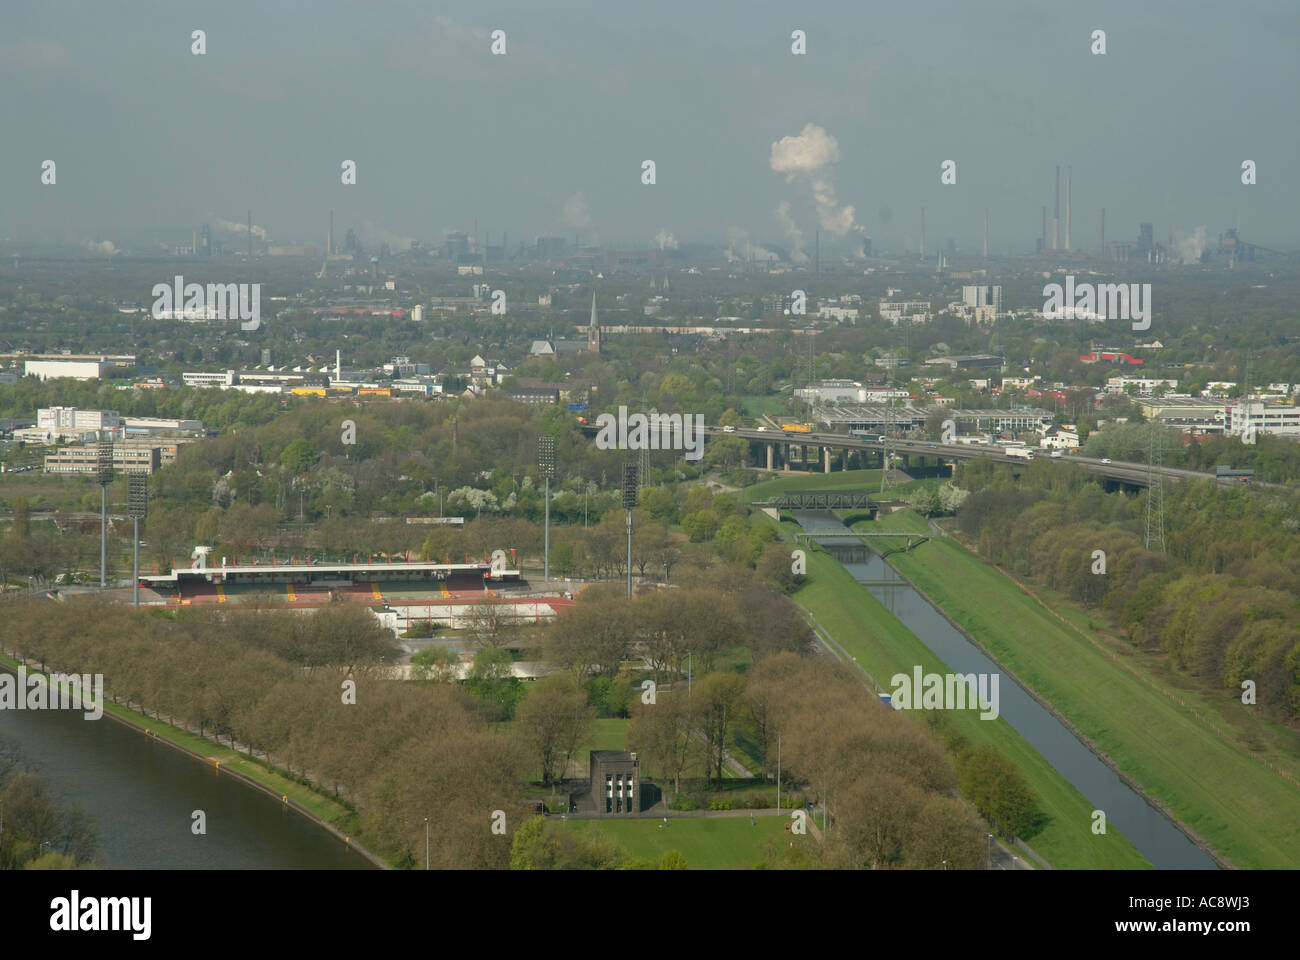 Industrial Ruhr Region, Germany - Stock Image